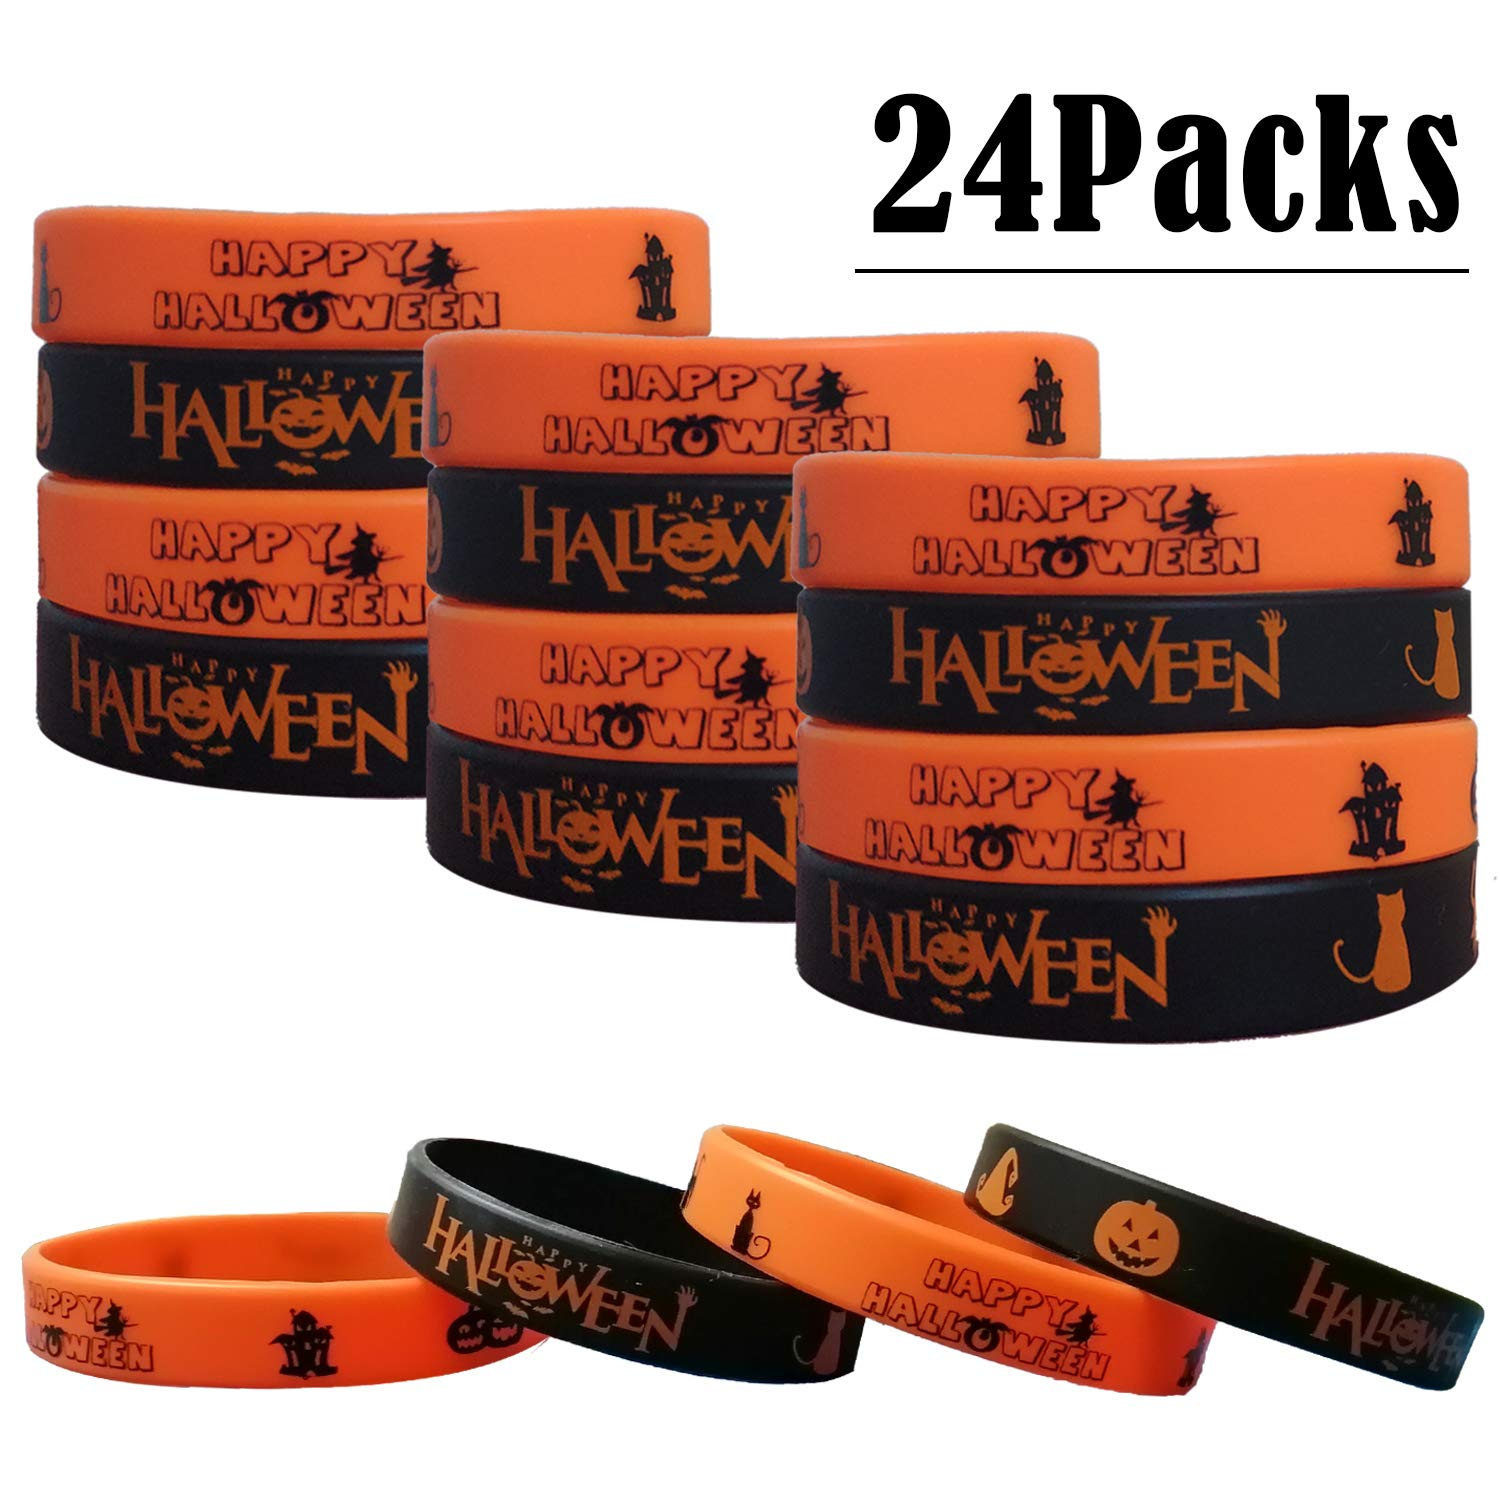 Halloween Party Supplies Trick or Tread Gifts//Goodie Bag Stuffers Silicone Wristbands 24PCS Halloween Party Favors Rubber Bracelets